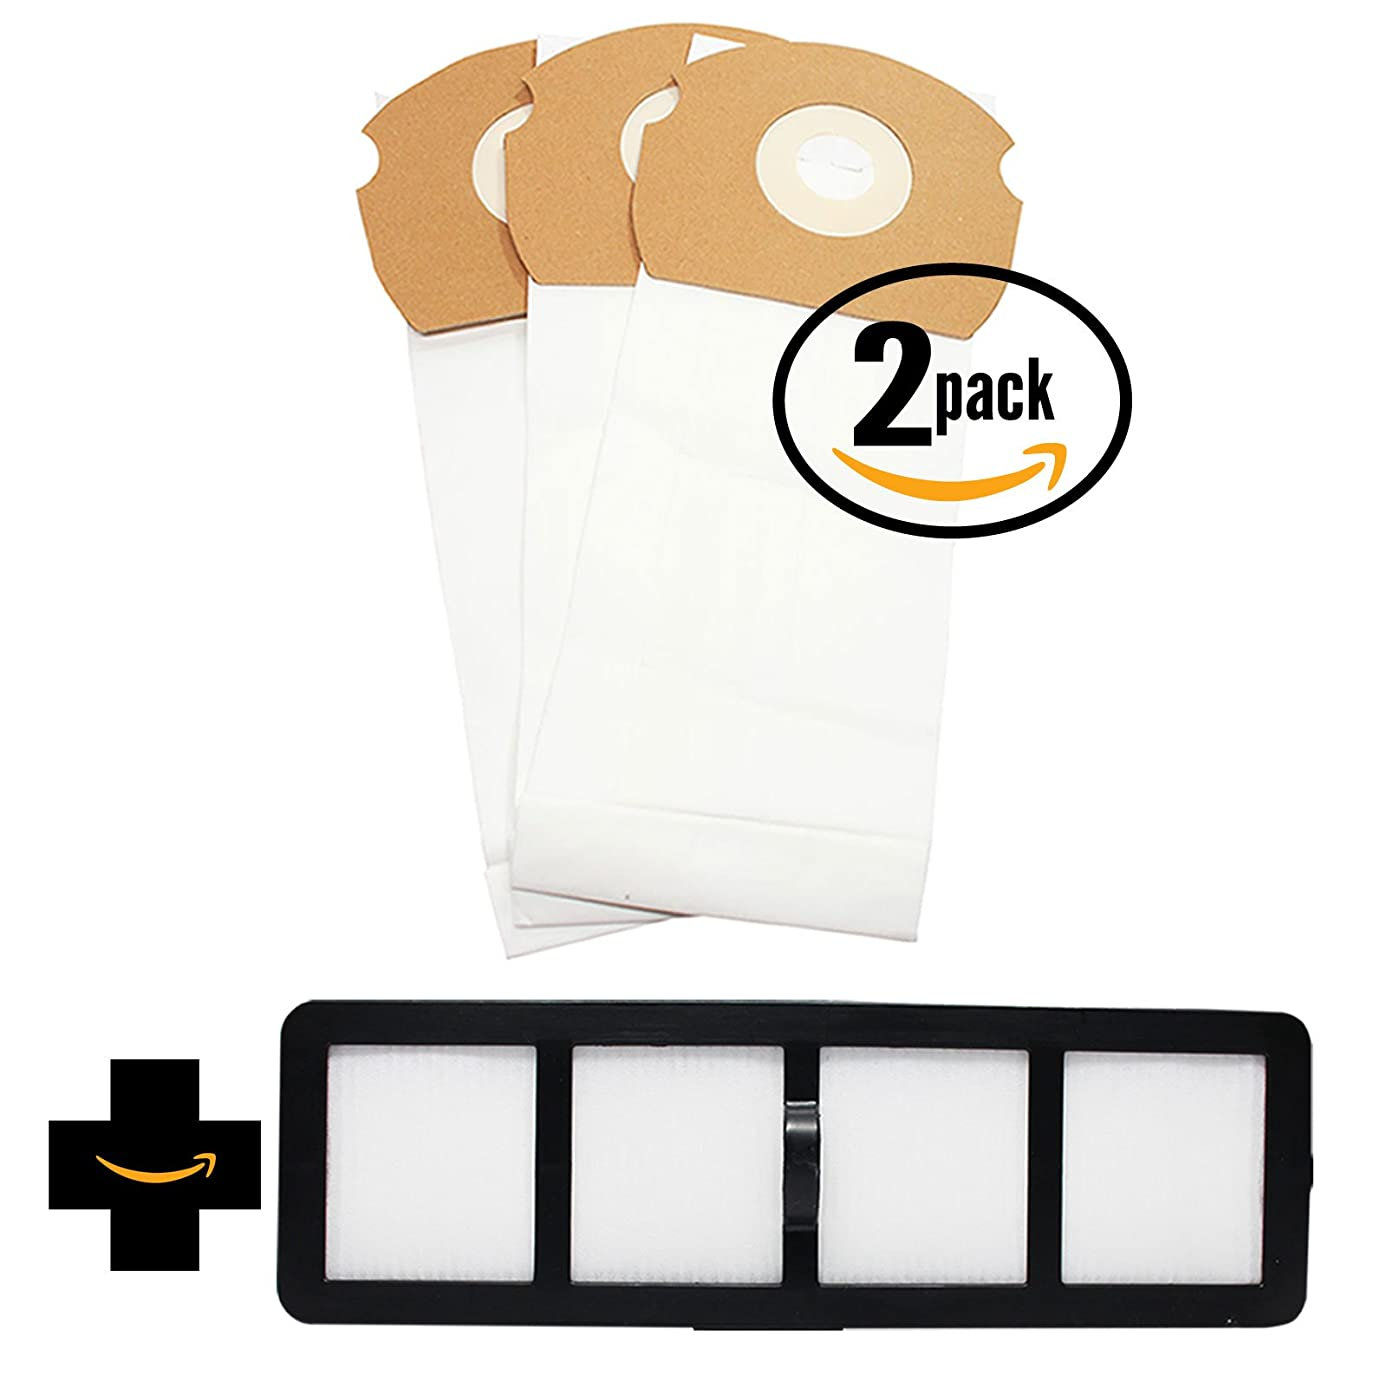 6 Replacement AS Vacuum Bags 68155 & EF-6 Filter 69963 for Eureka - Compatible with Eureka AirSpeed AS1000A, Eureka AS1000A, Eureka AS1001A, Eureka AS1051A, DCF-21 Dust Cup Filter, Eureka AS1050, Eureka AS1053AX, Eureka AirSpeed Gold AS1001A, Eureka AirSpeed AS1050